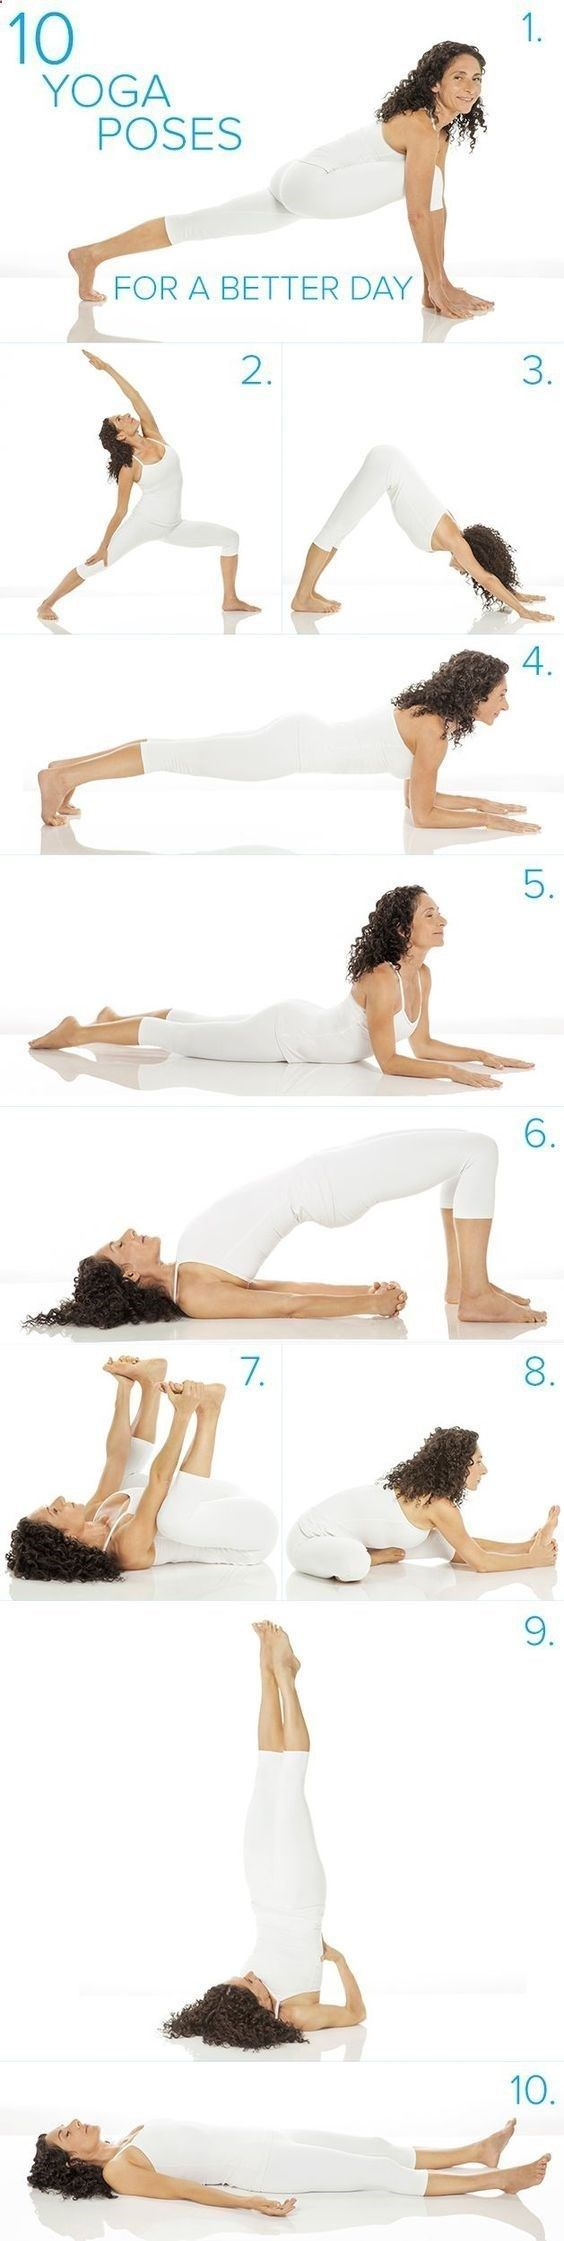 DownDog Yoga Poses for Fun Fitness: 10-minute yoga sequence you can do anywhere #yogafitness